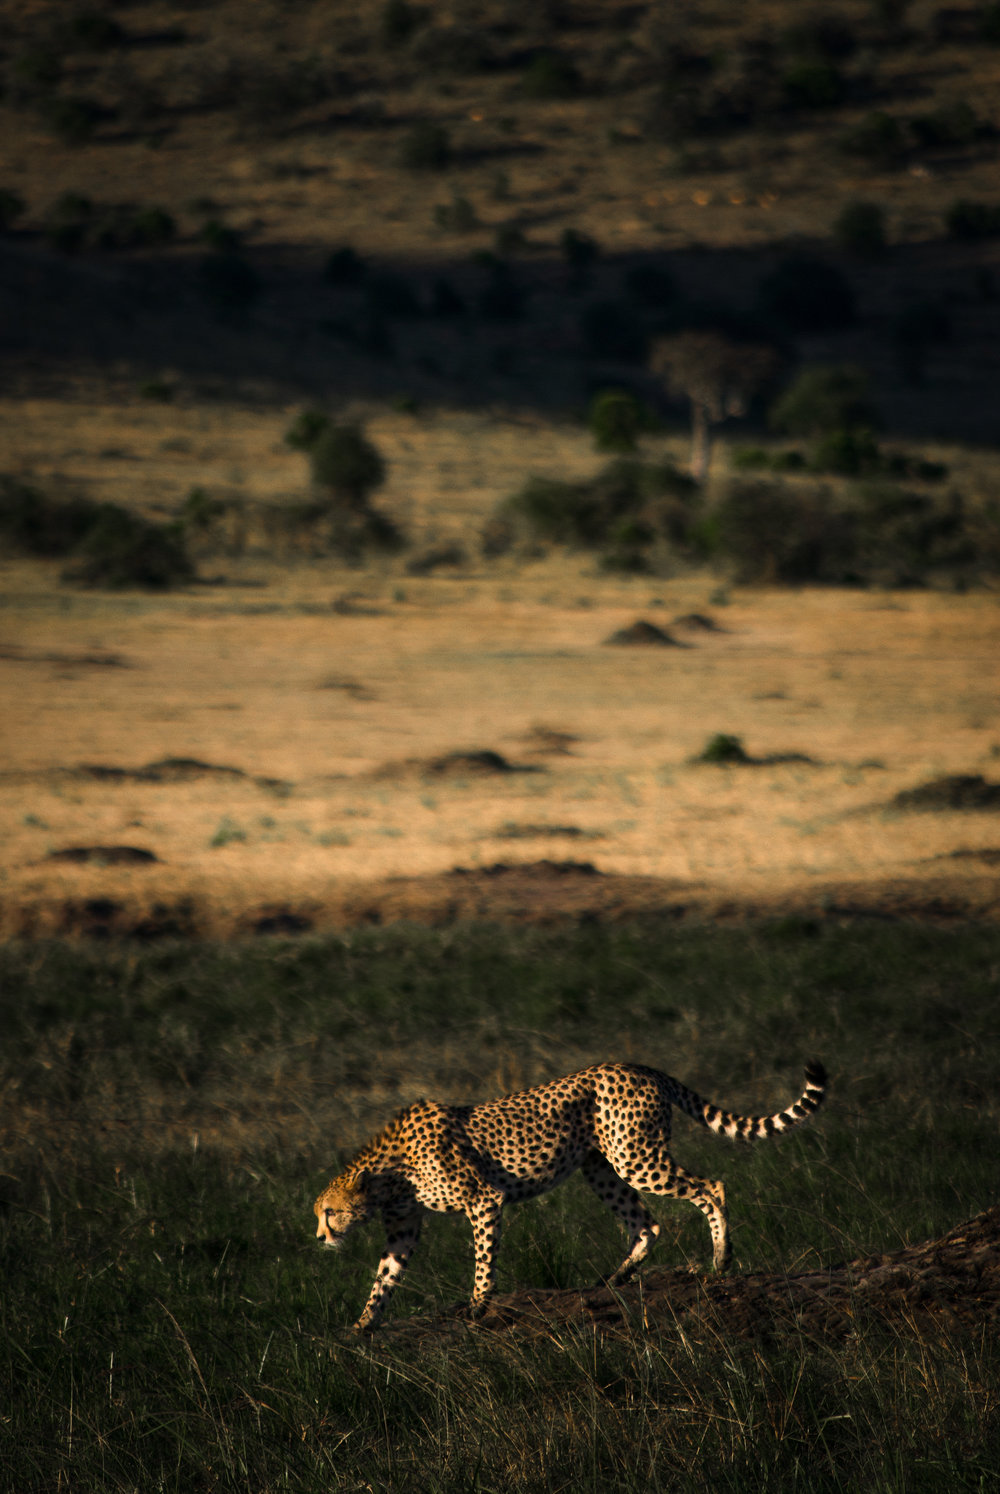 Taken in the Masai Mara National Reserve in Kenya with a Nikon D80.